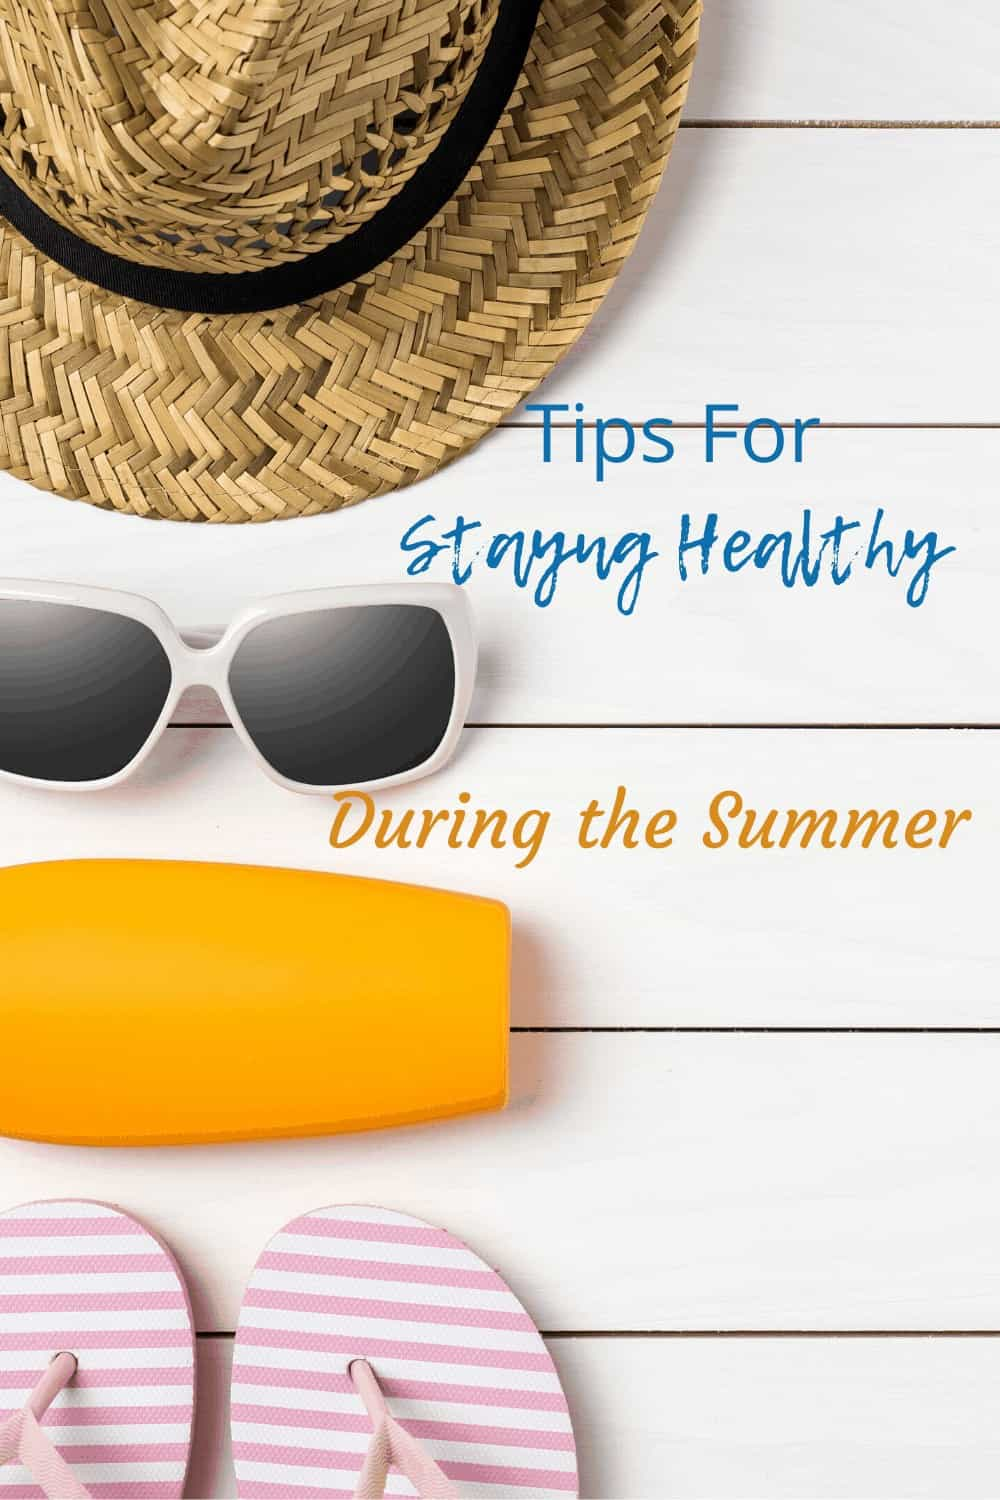 sunscreen, hat and glasses tips for staying healthy during the summer